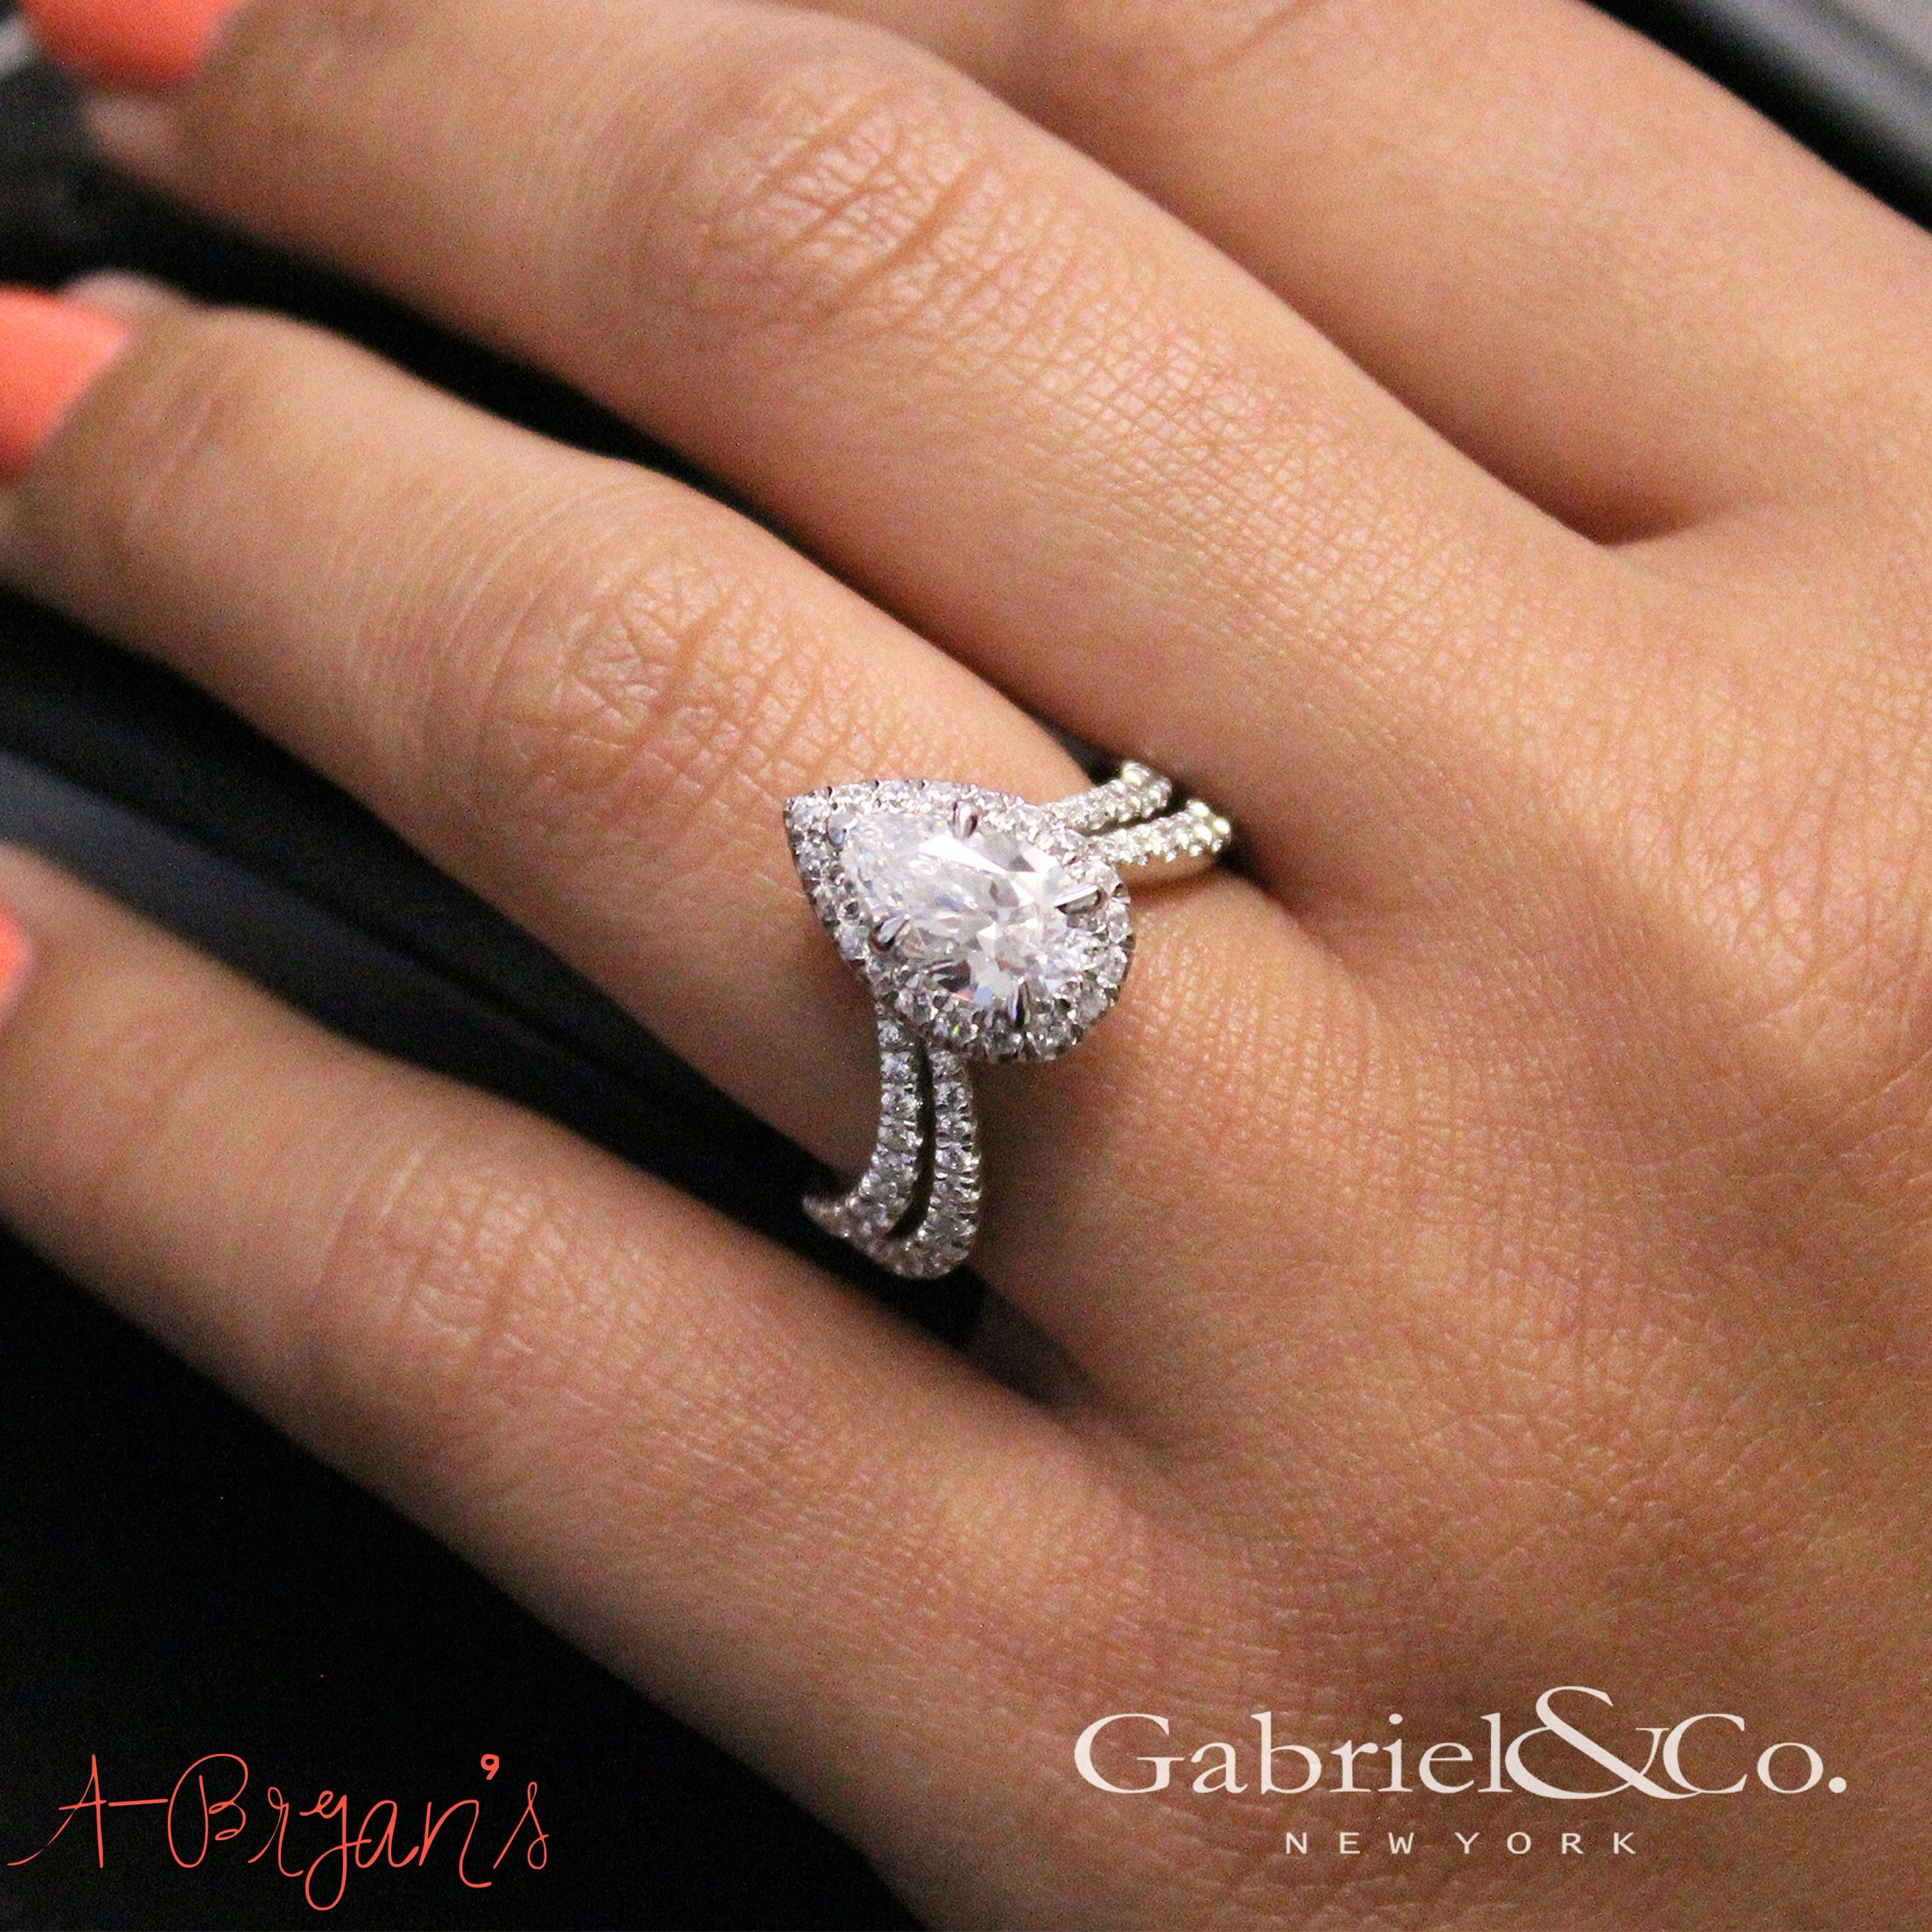 Lovely The bination of the teardrop diamond and the curved band is dainty simplistic PERFECTION